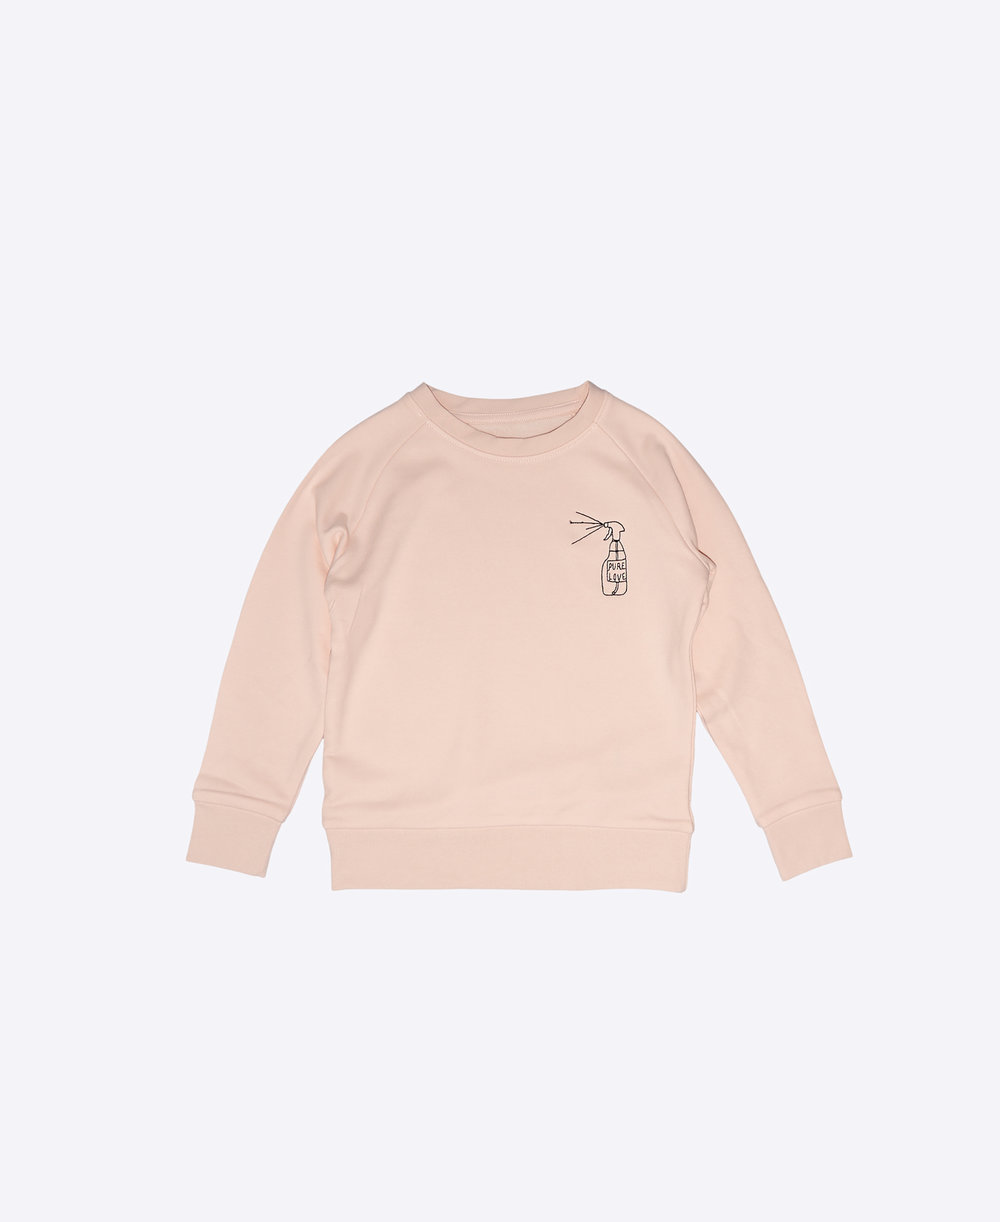 pure-love-spray-pink-kids-sweater.jpg